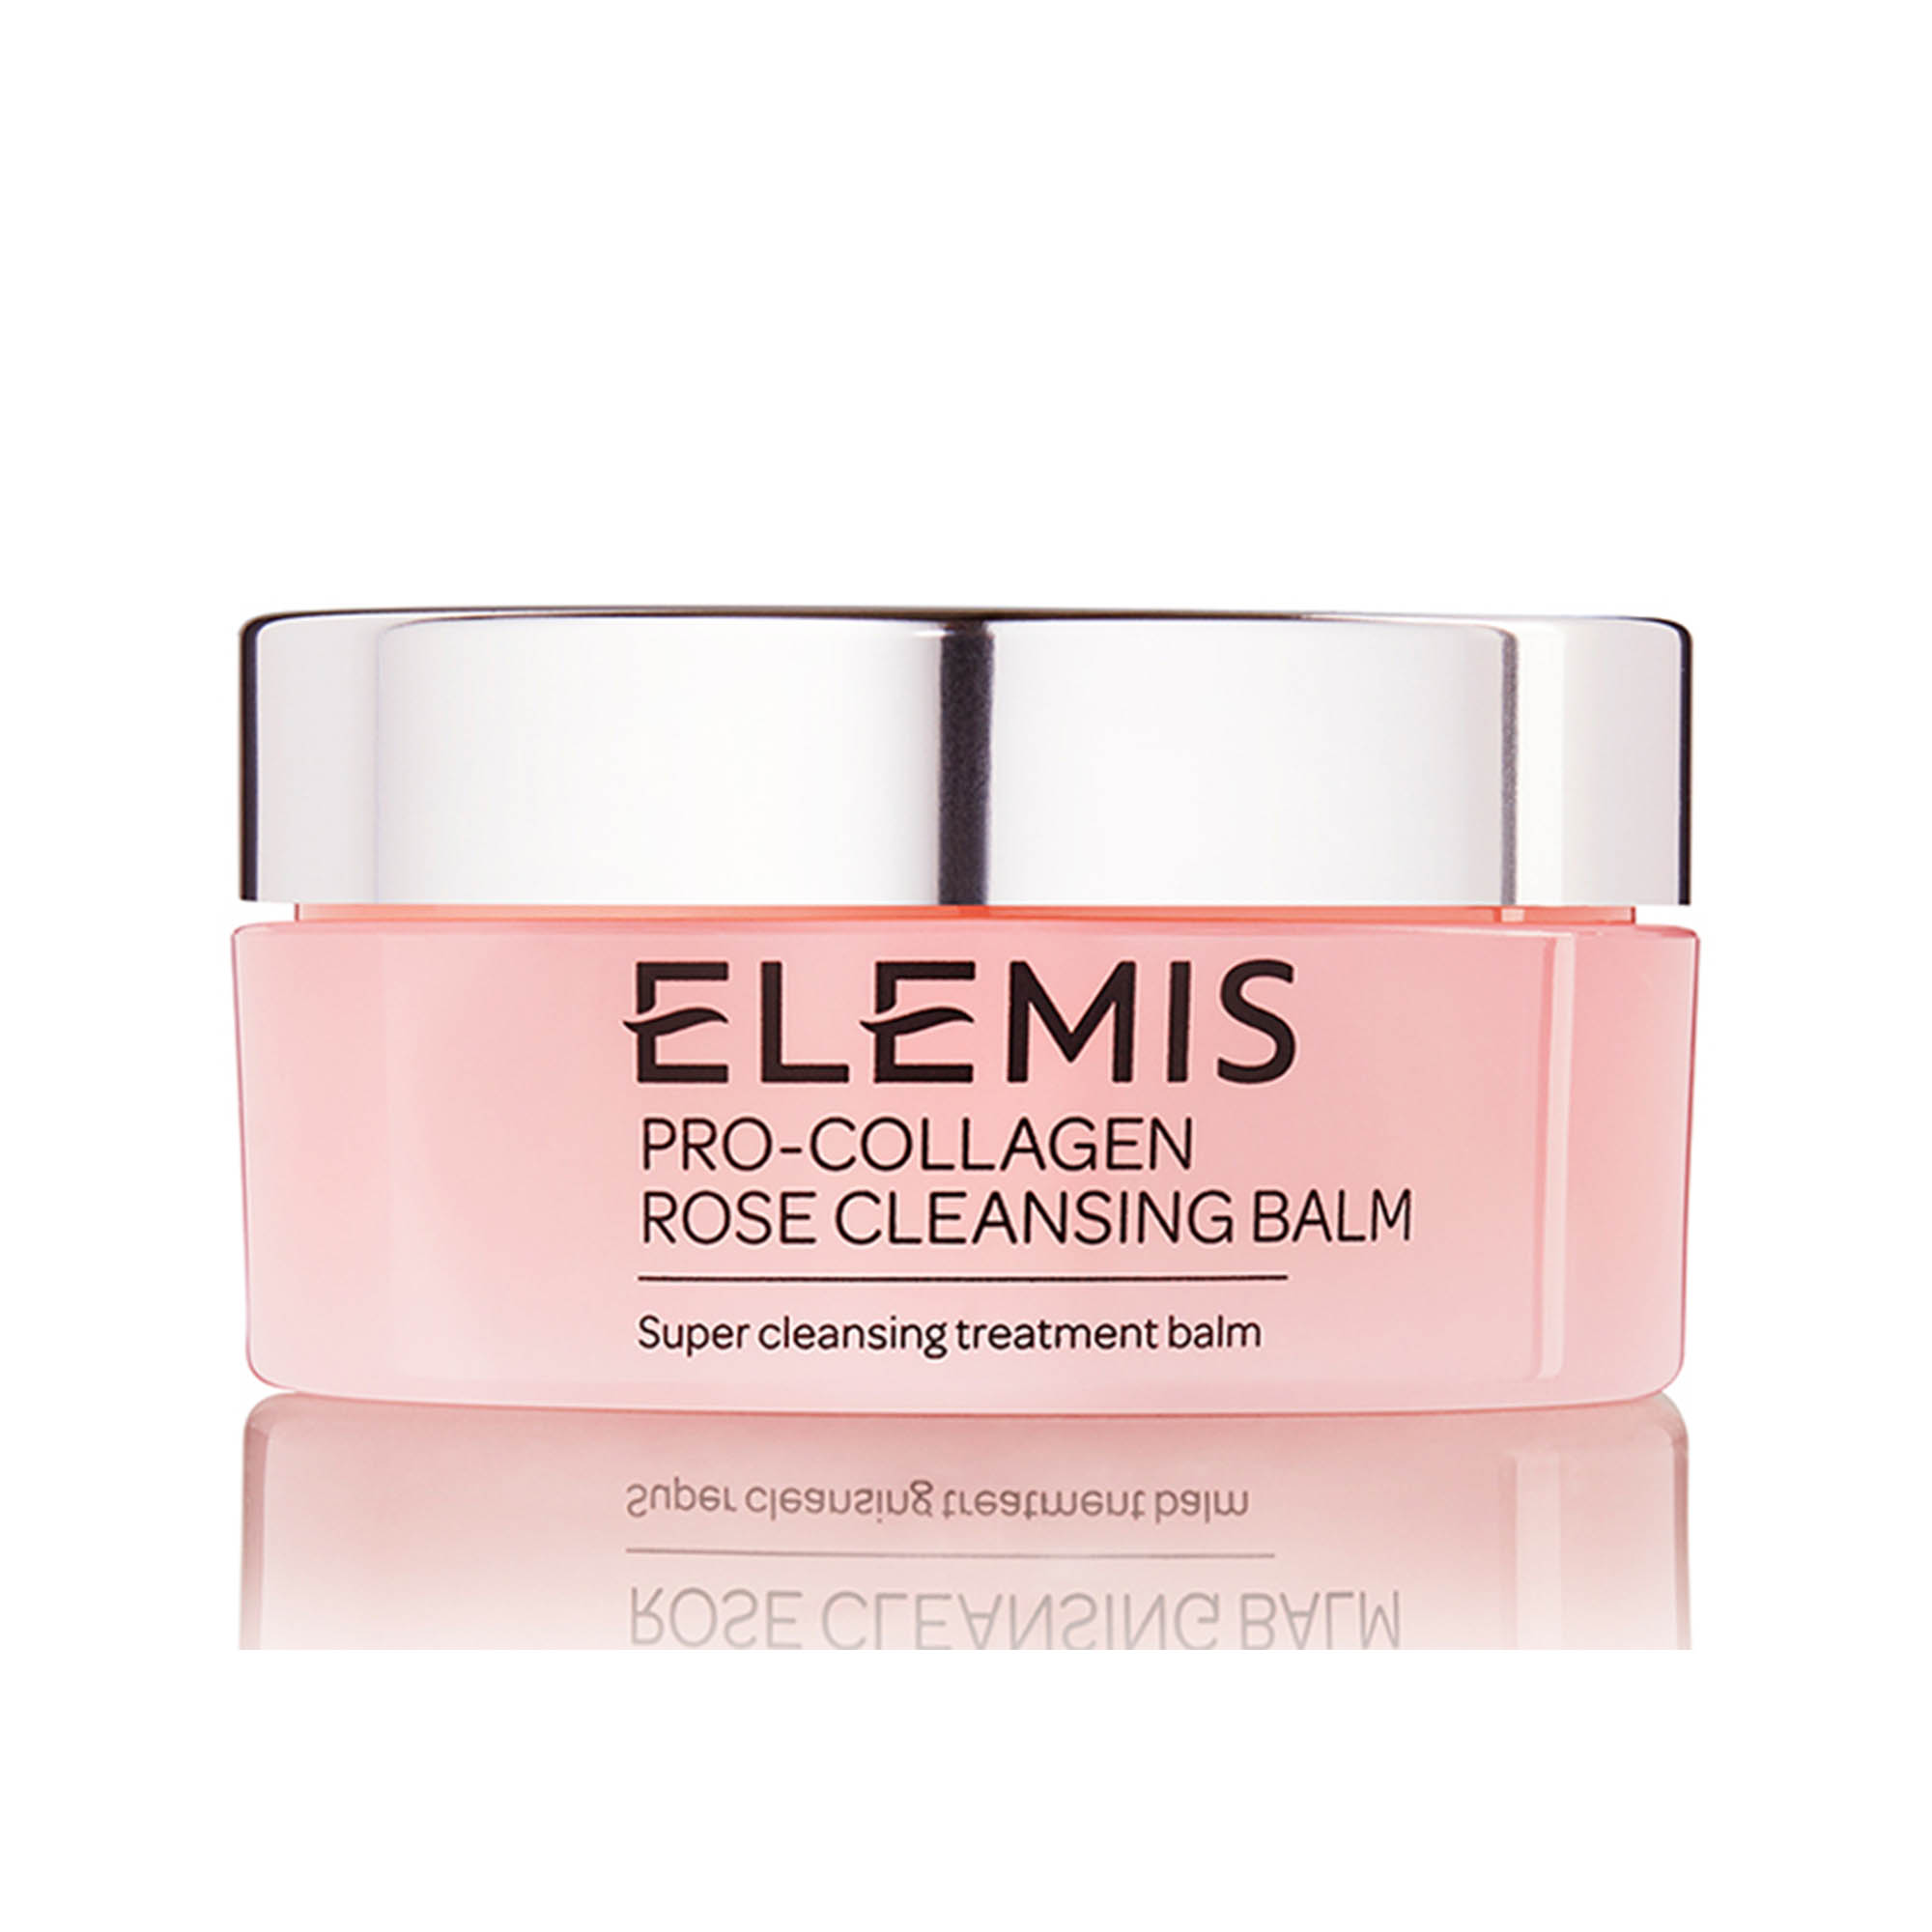 641628501731_ELEMIS_Pro-Collagen-Rose-Balm